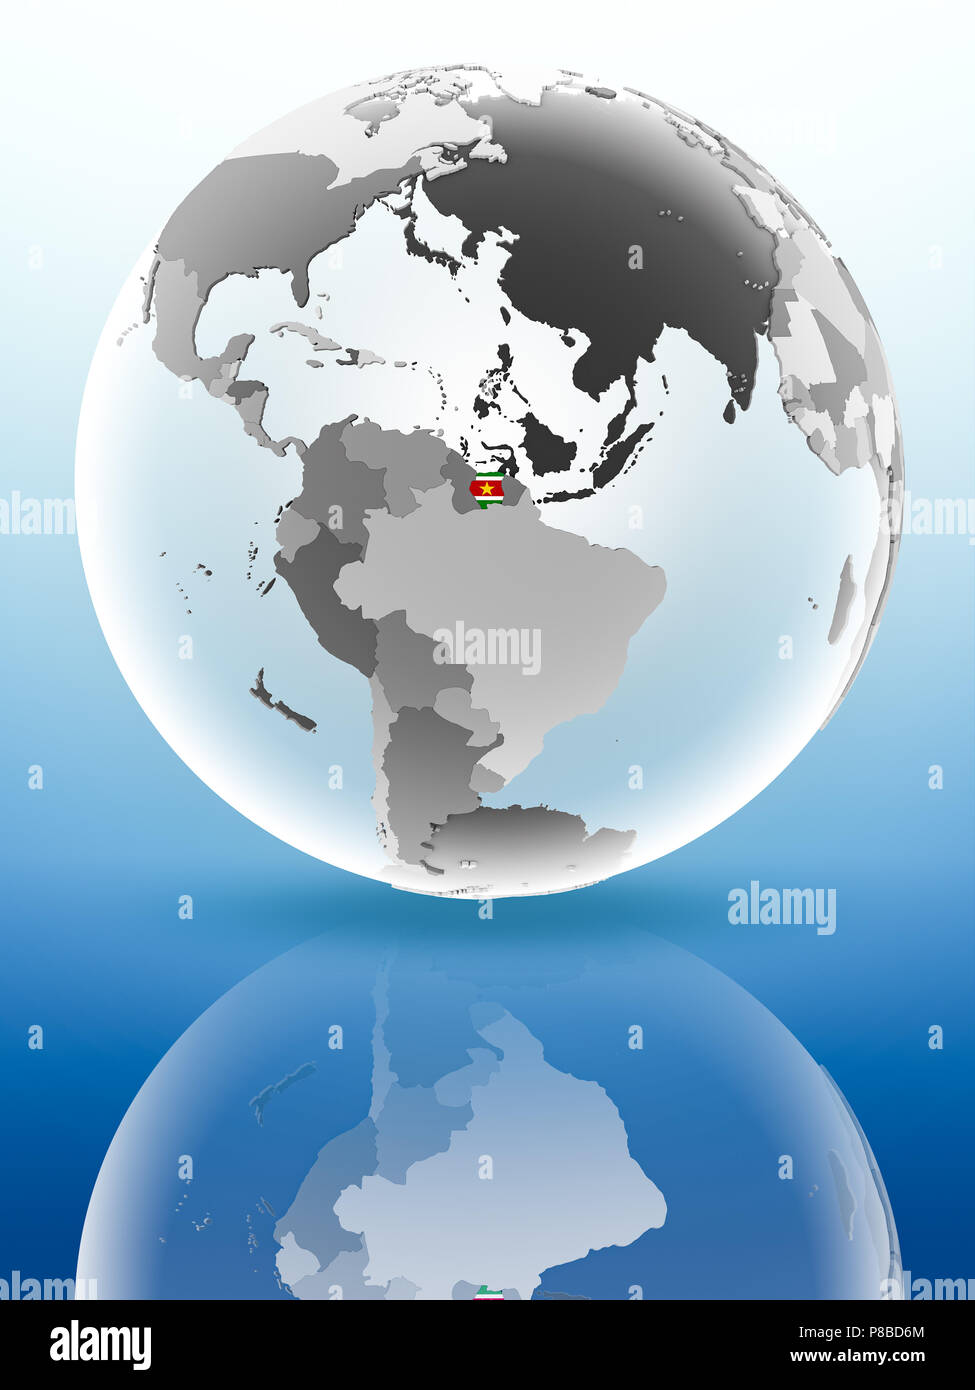 Suriname with flag on globe reflecting on shiny surface. 3D illustration. - Stock Image